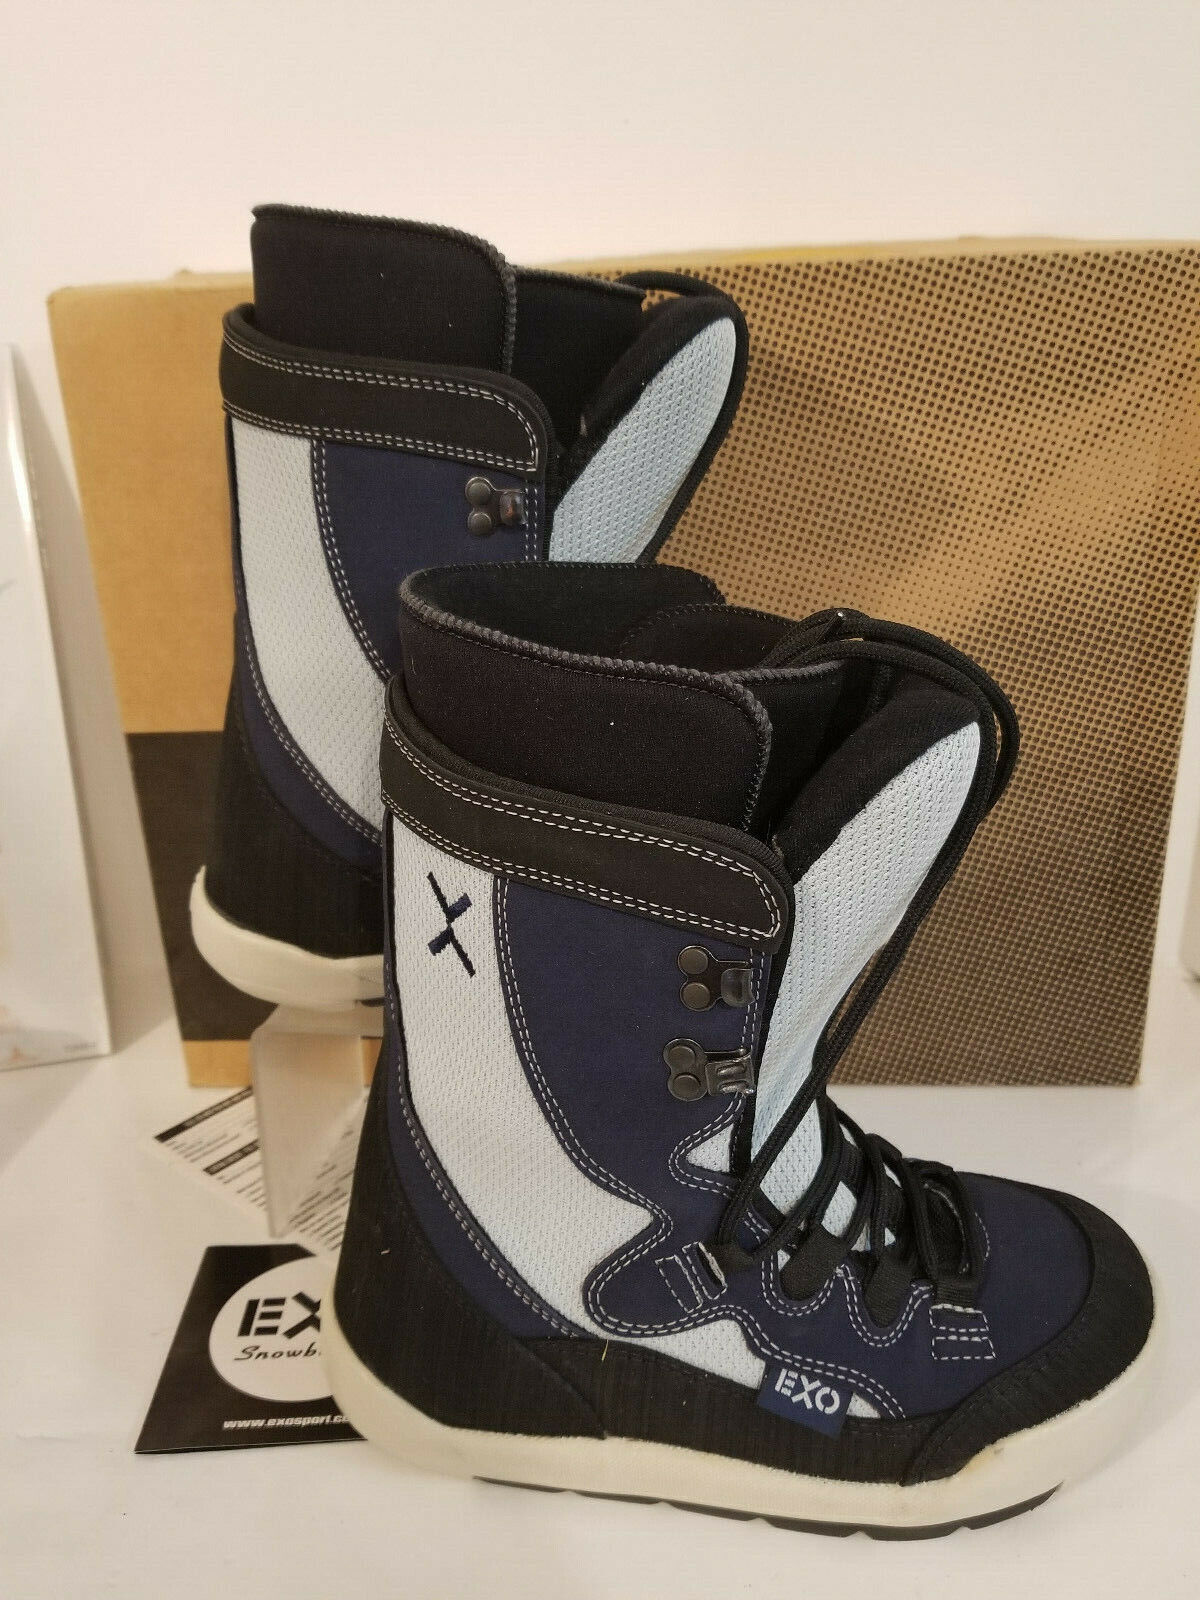 EXO Showboard Boots Women Size 7 Xgreen bluee & White Very Good Condition with Box